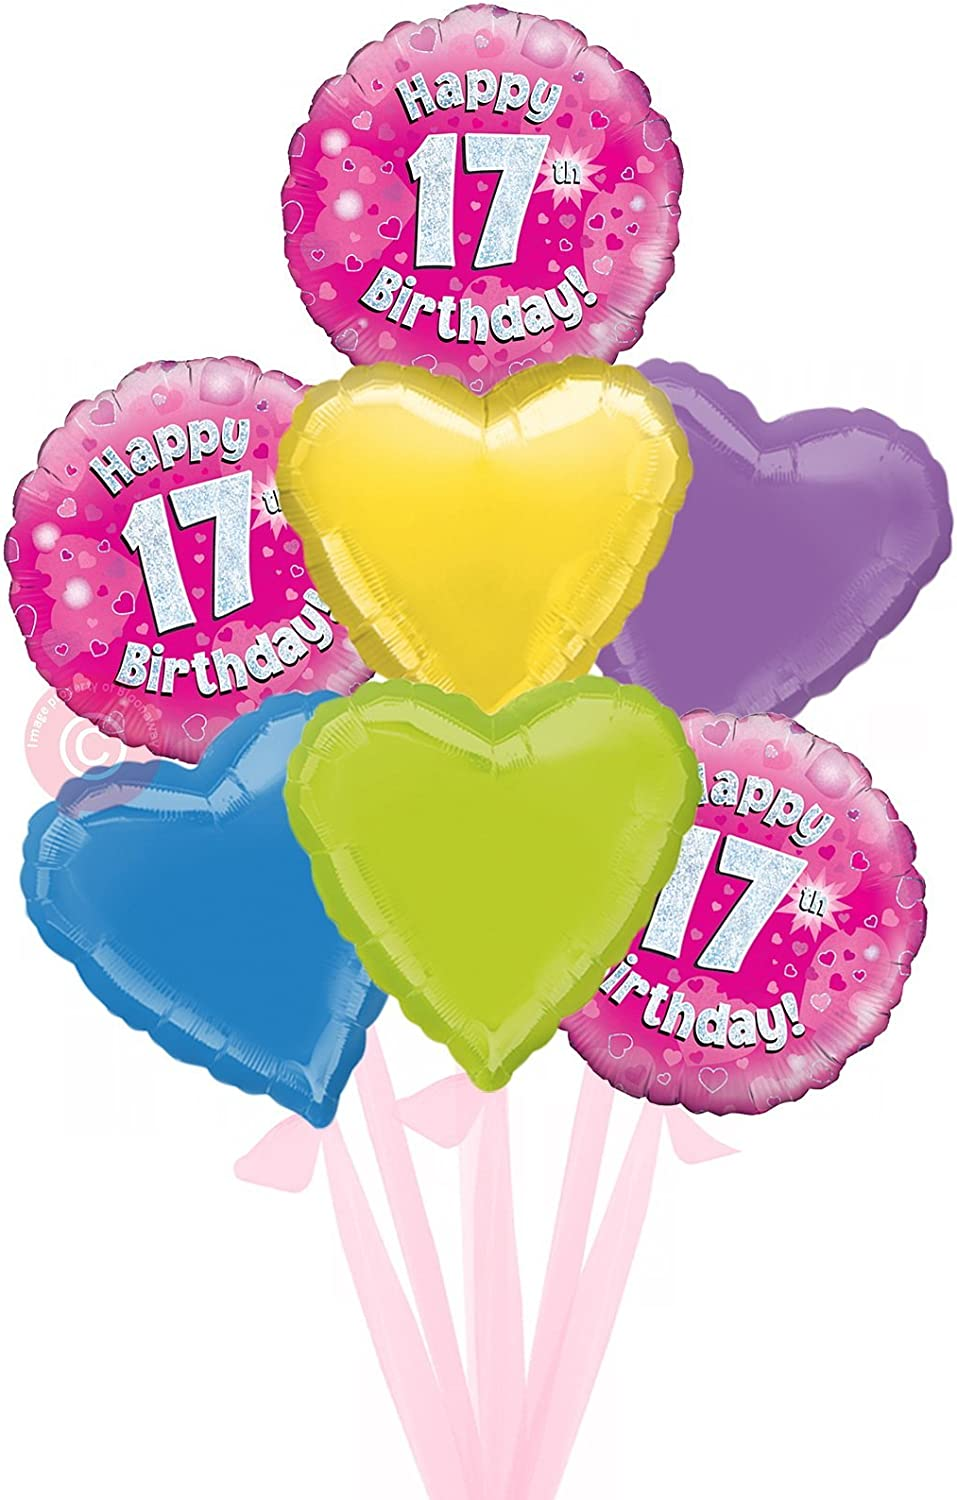 Num 17 Happy 17th Birthday Pink Holographic  Inflated Birthday Helium Balloon Delivered in a Box  Bigger Bouquet  7 Balloons  Bloonaway